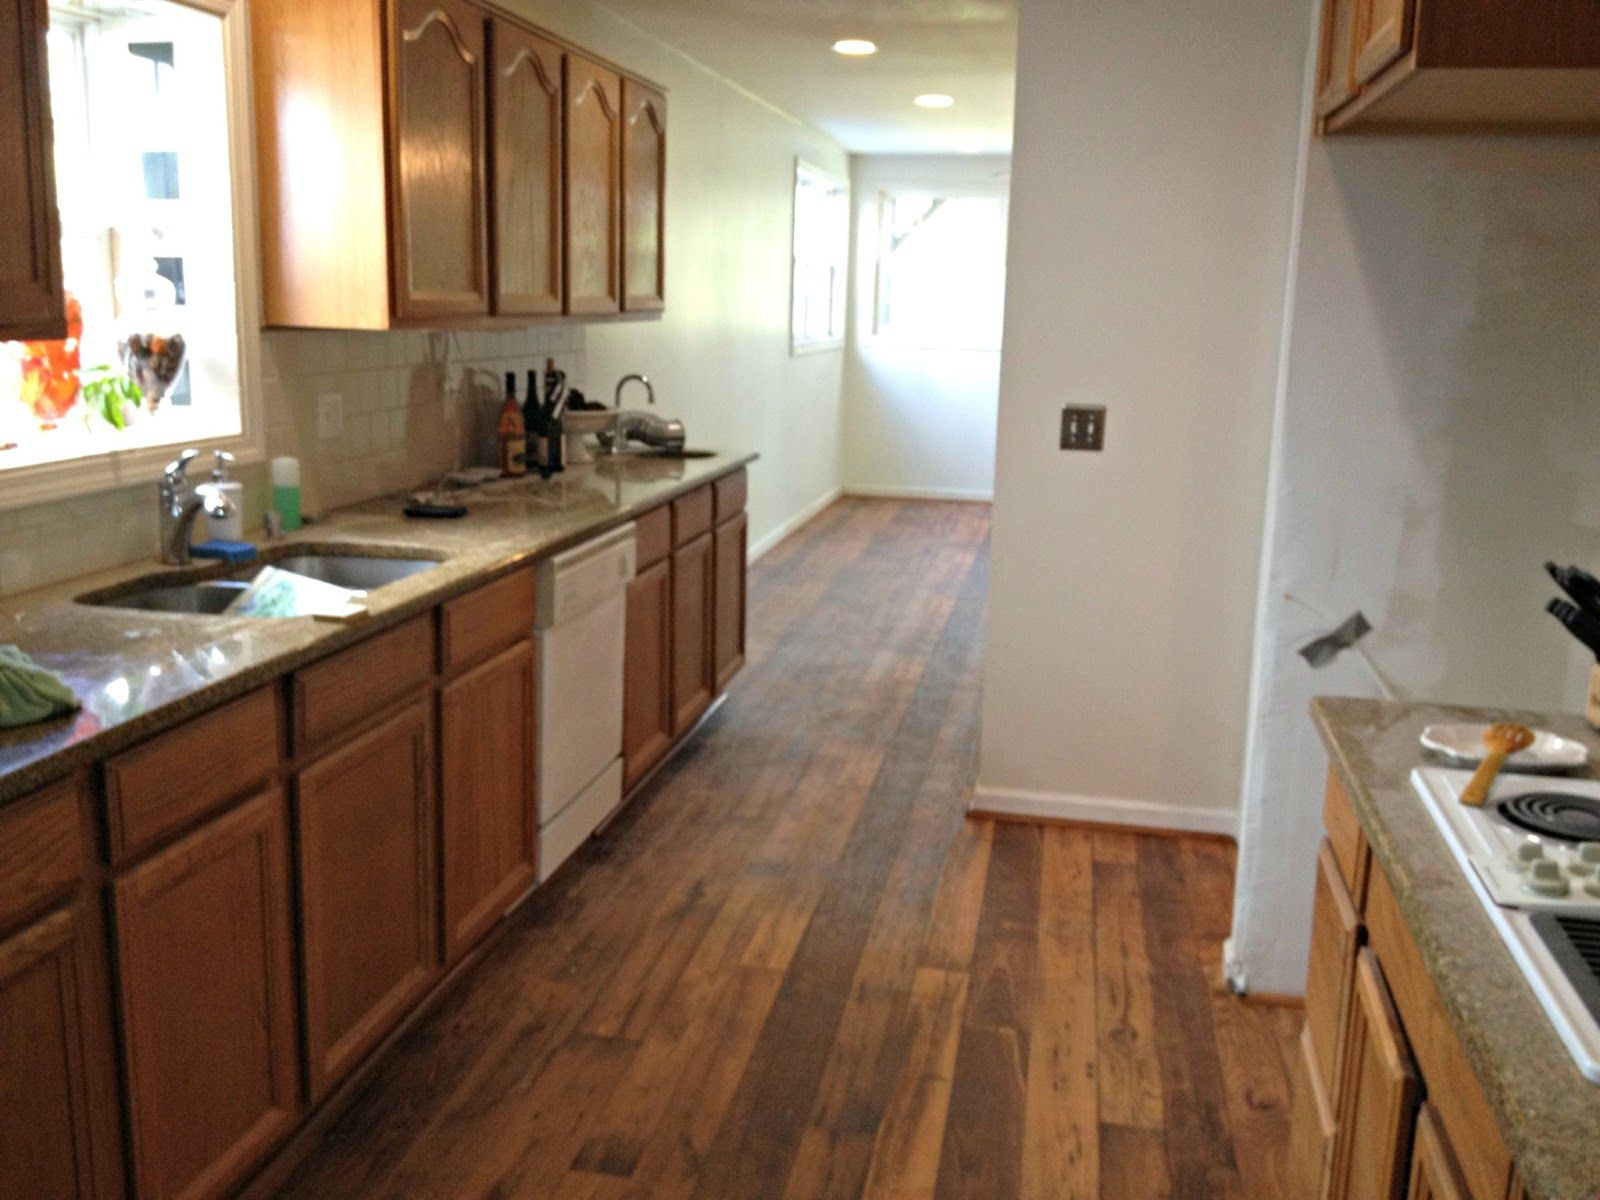 interior-after-remodel-small-and-narrow-kitchen-spaces-with-marble ...